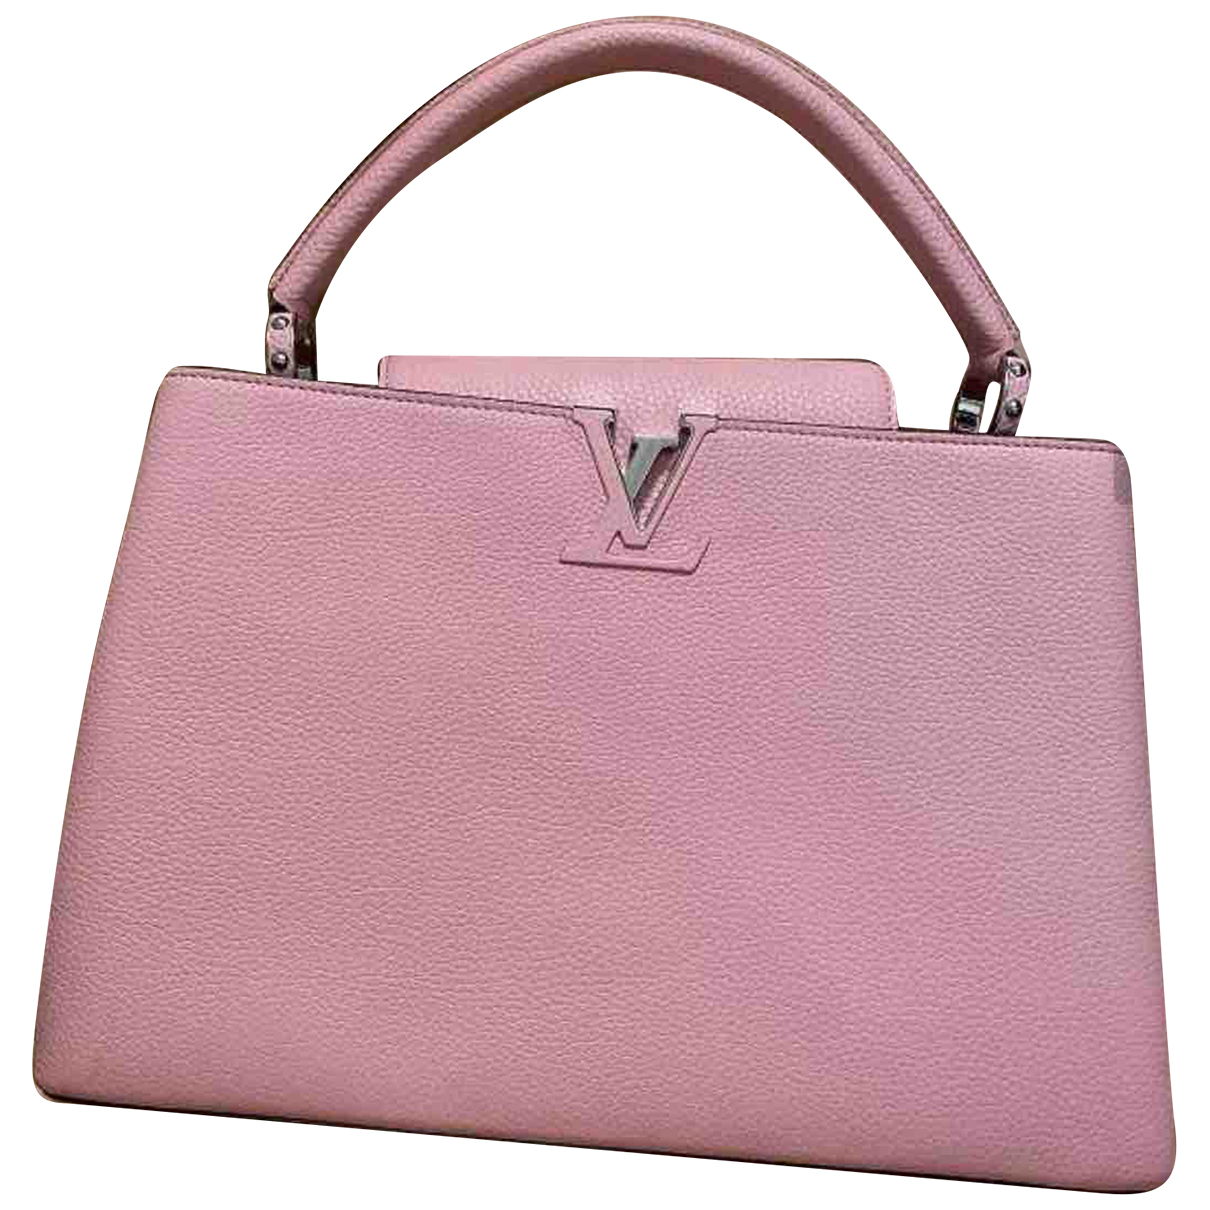 Louis Vuitton Capucines Pink Leather handbag for Women N